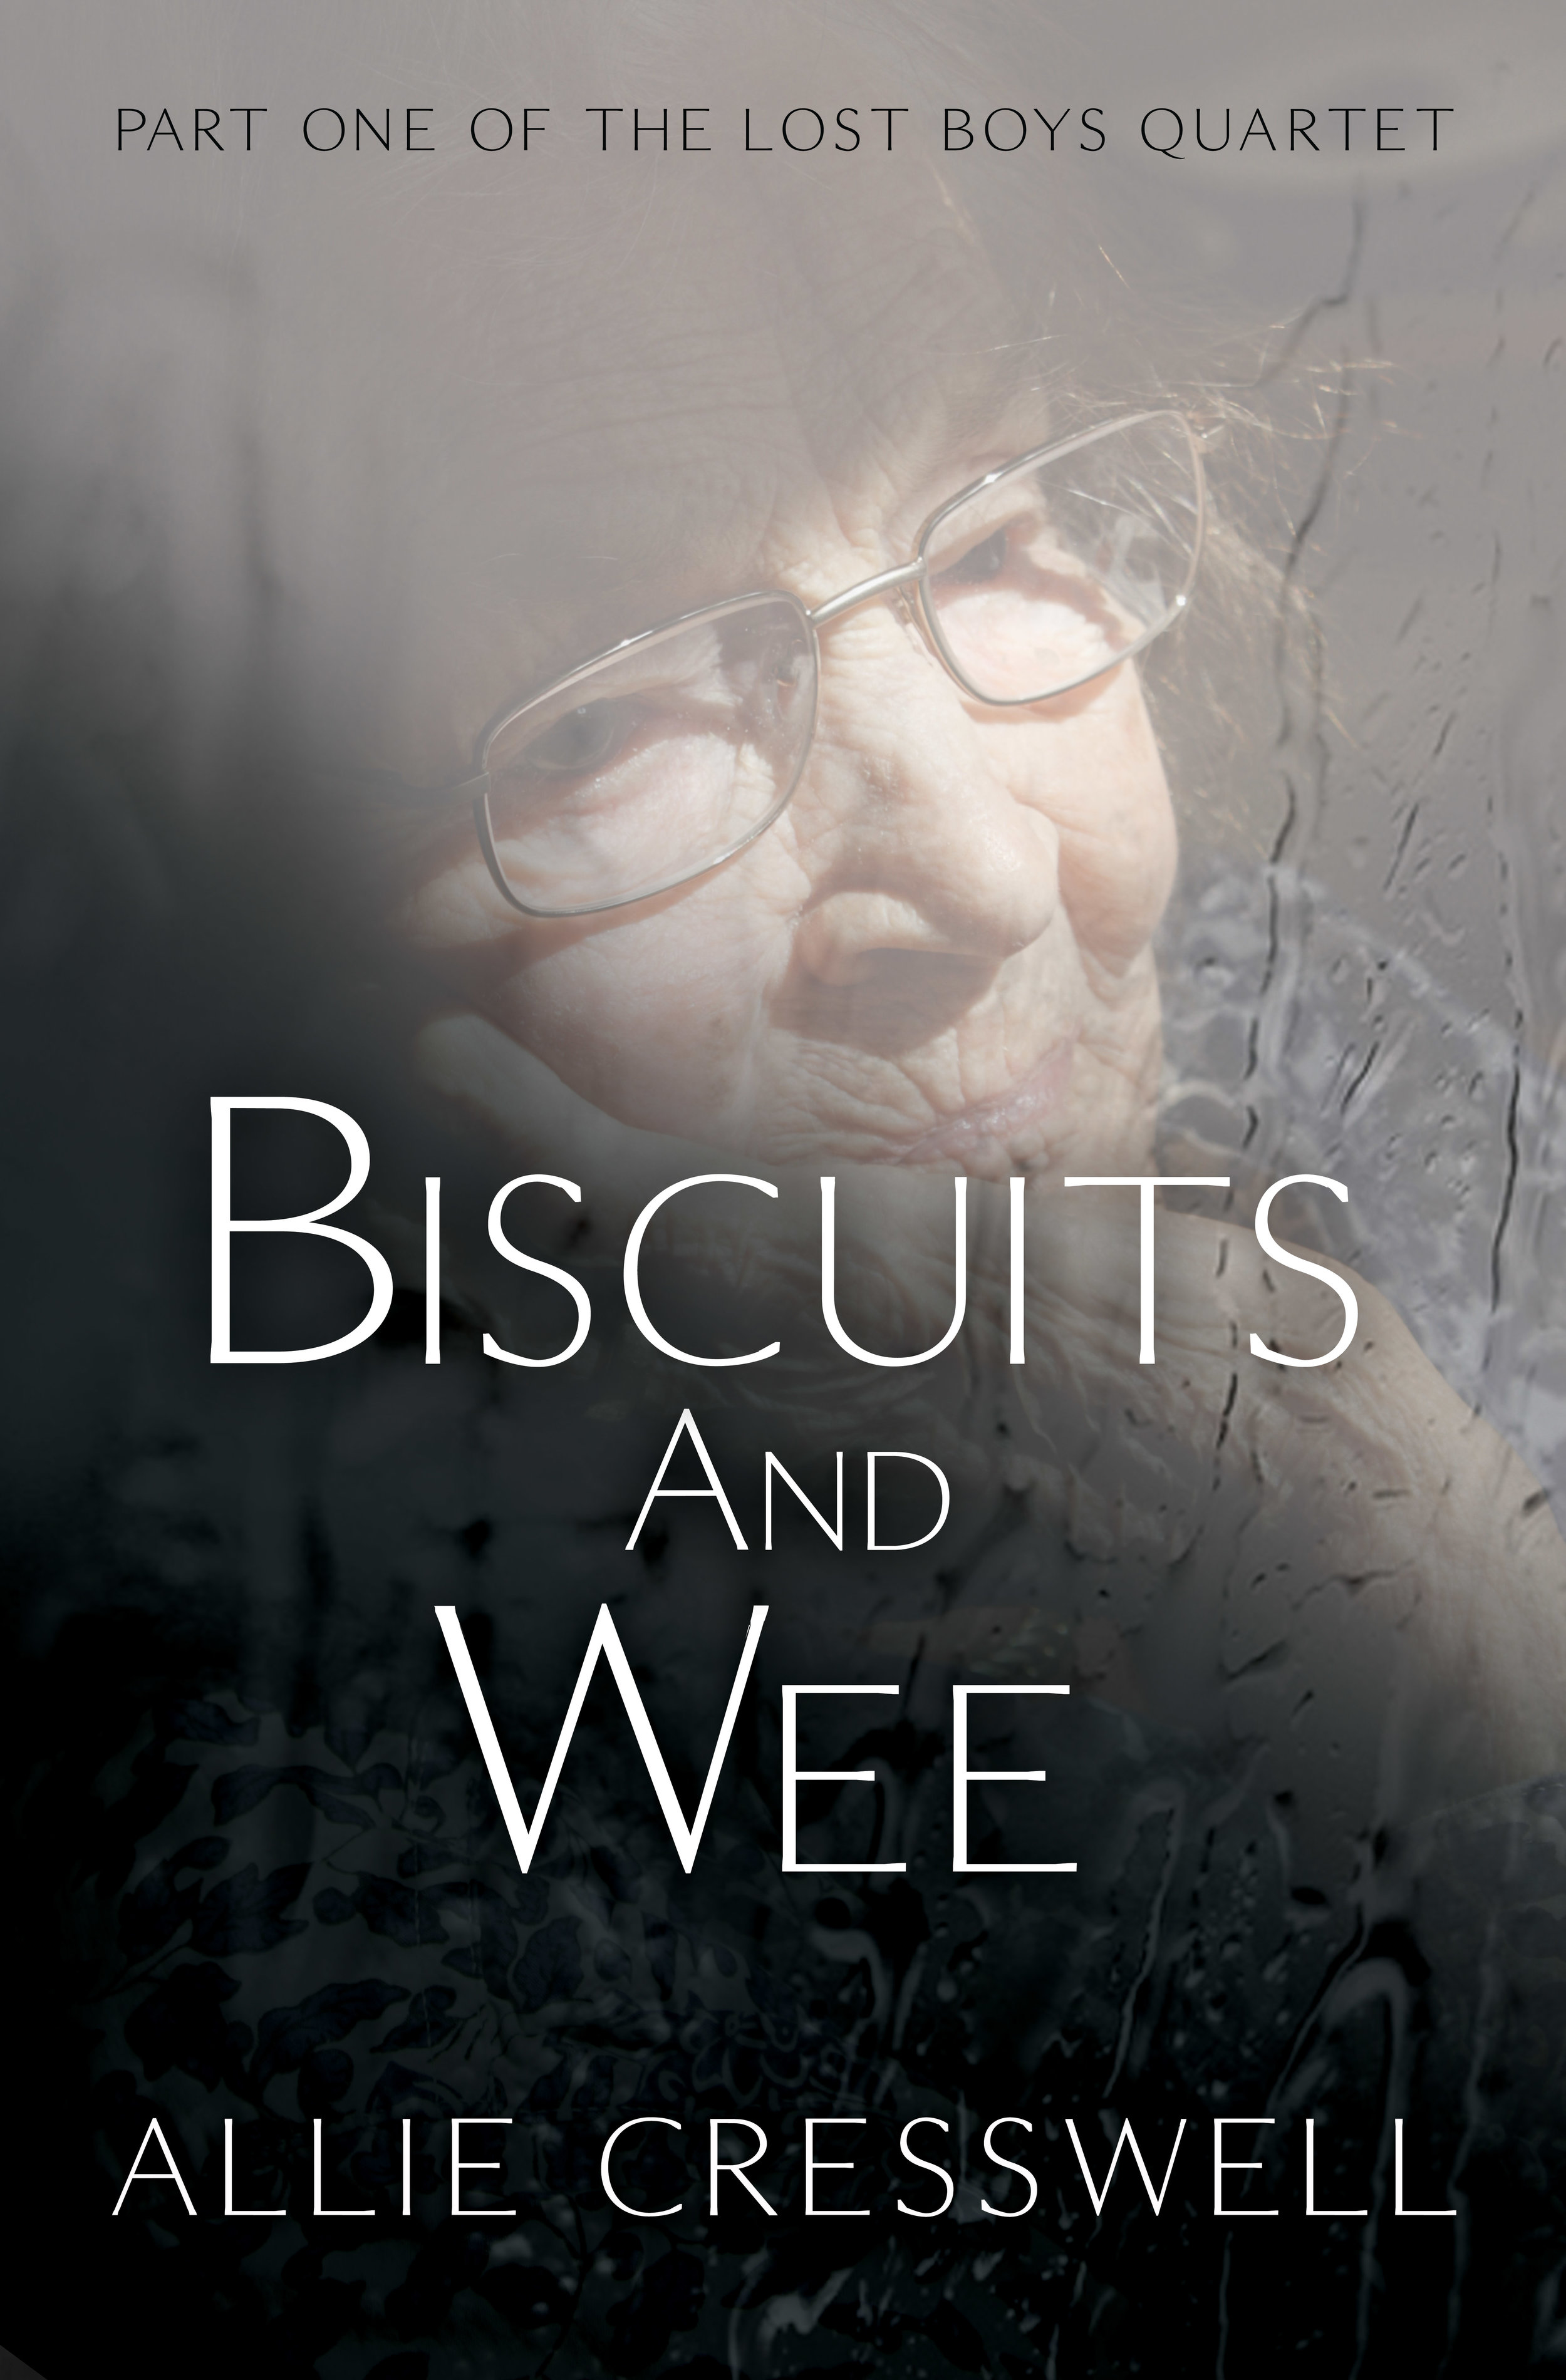 Biscuits and wee by Allie Cresswell